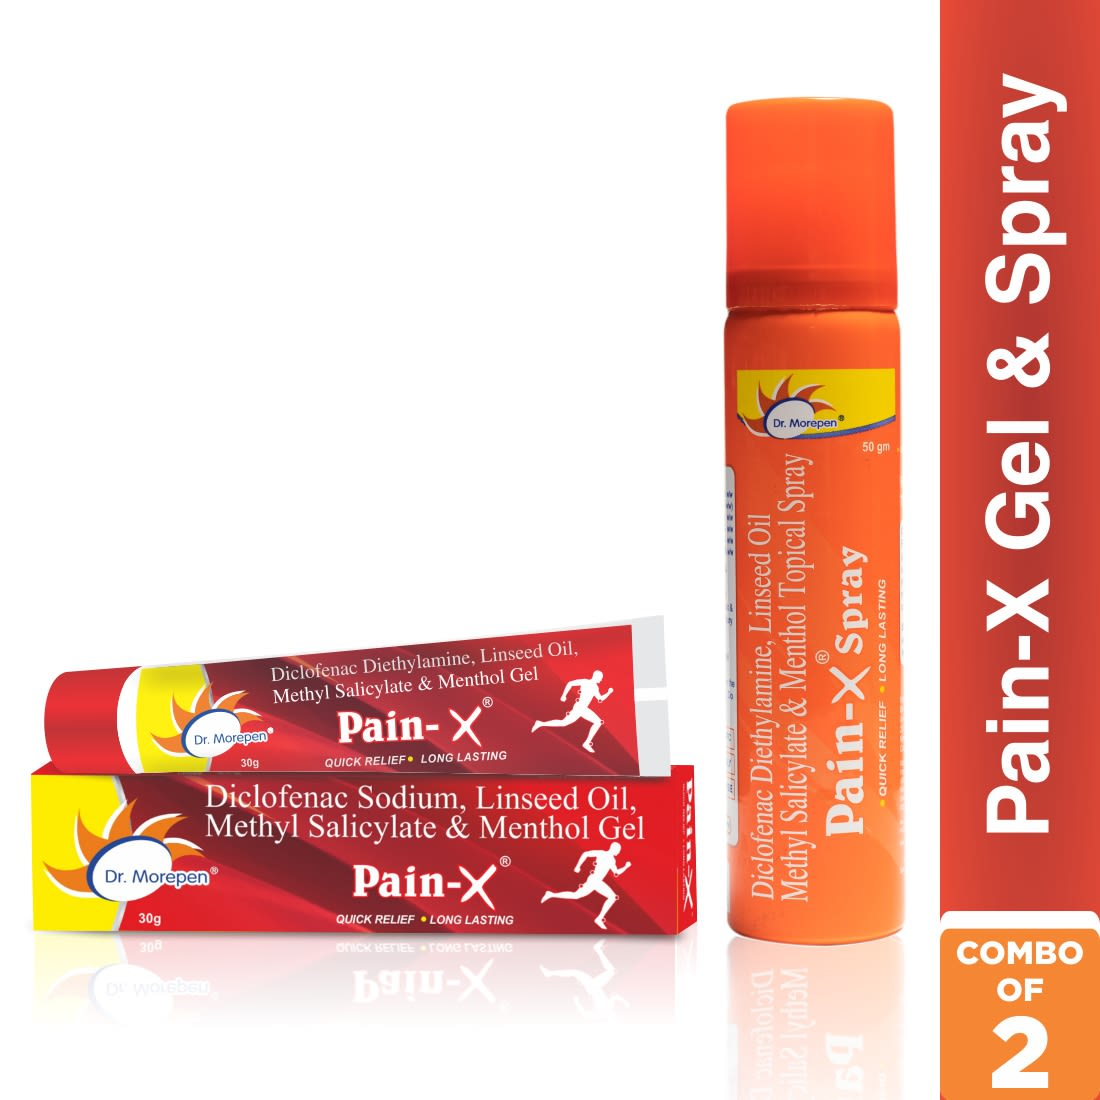 Dr. Morepen Body Pain Relief Combo - Pain-X Spray - 50g & Pain-X Gel - 30g